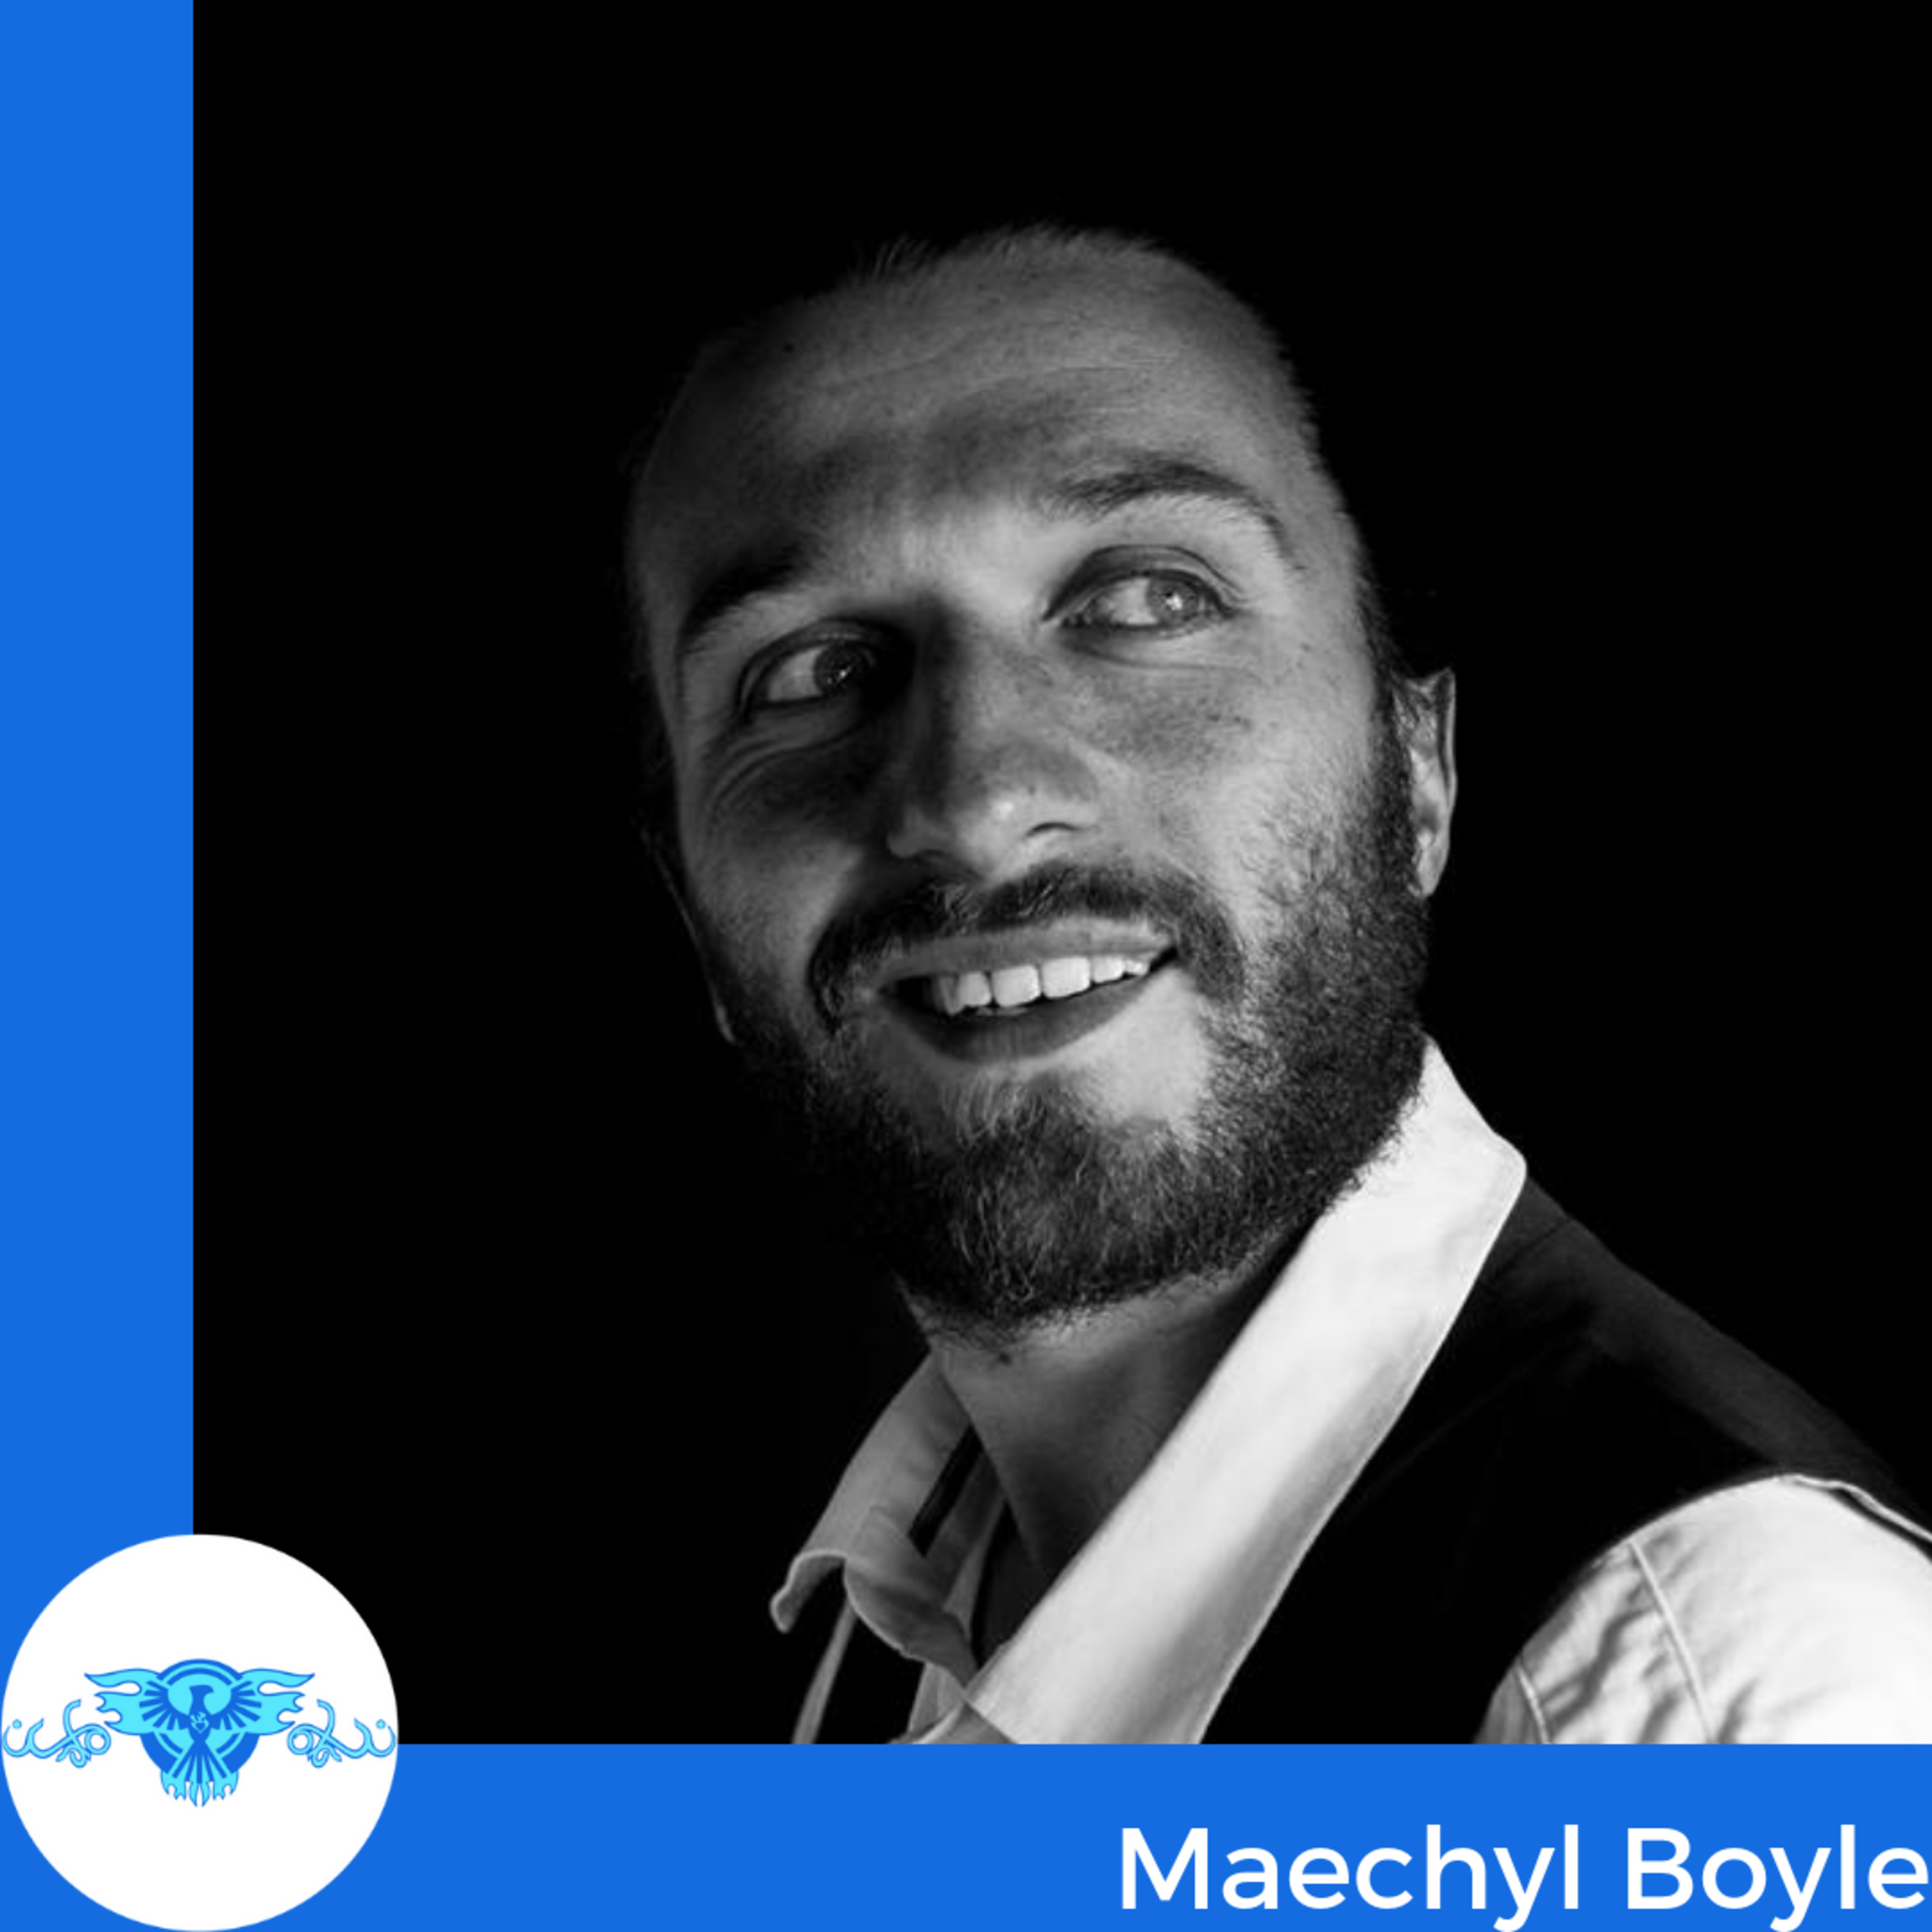 Maechyl Boyle | White Magic, Chaos Magic, Personal Development, Finding community online